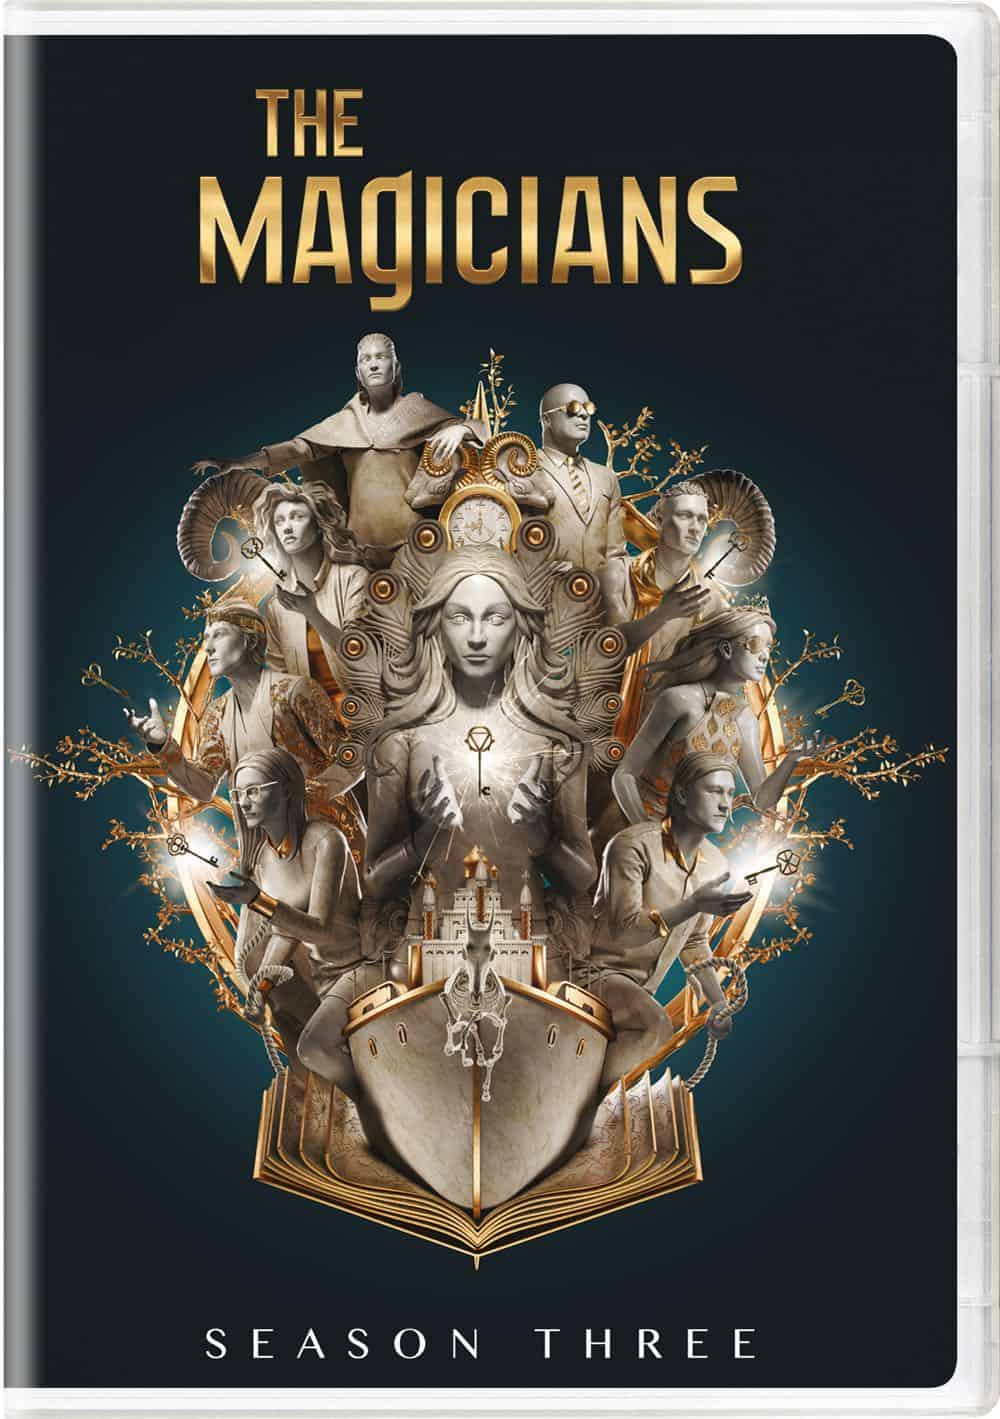 The Magicians Season 3 DVD Cover